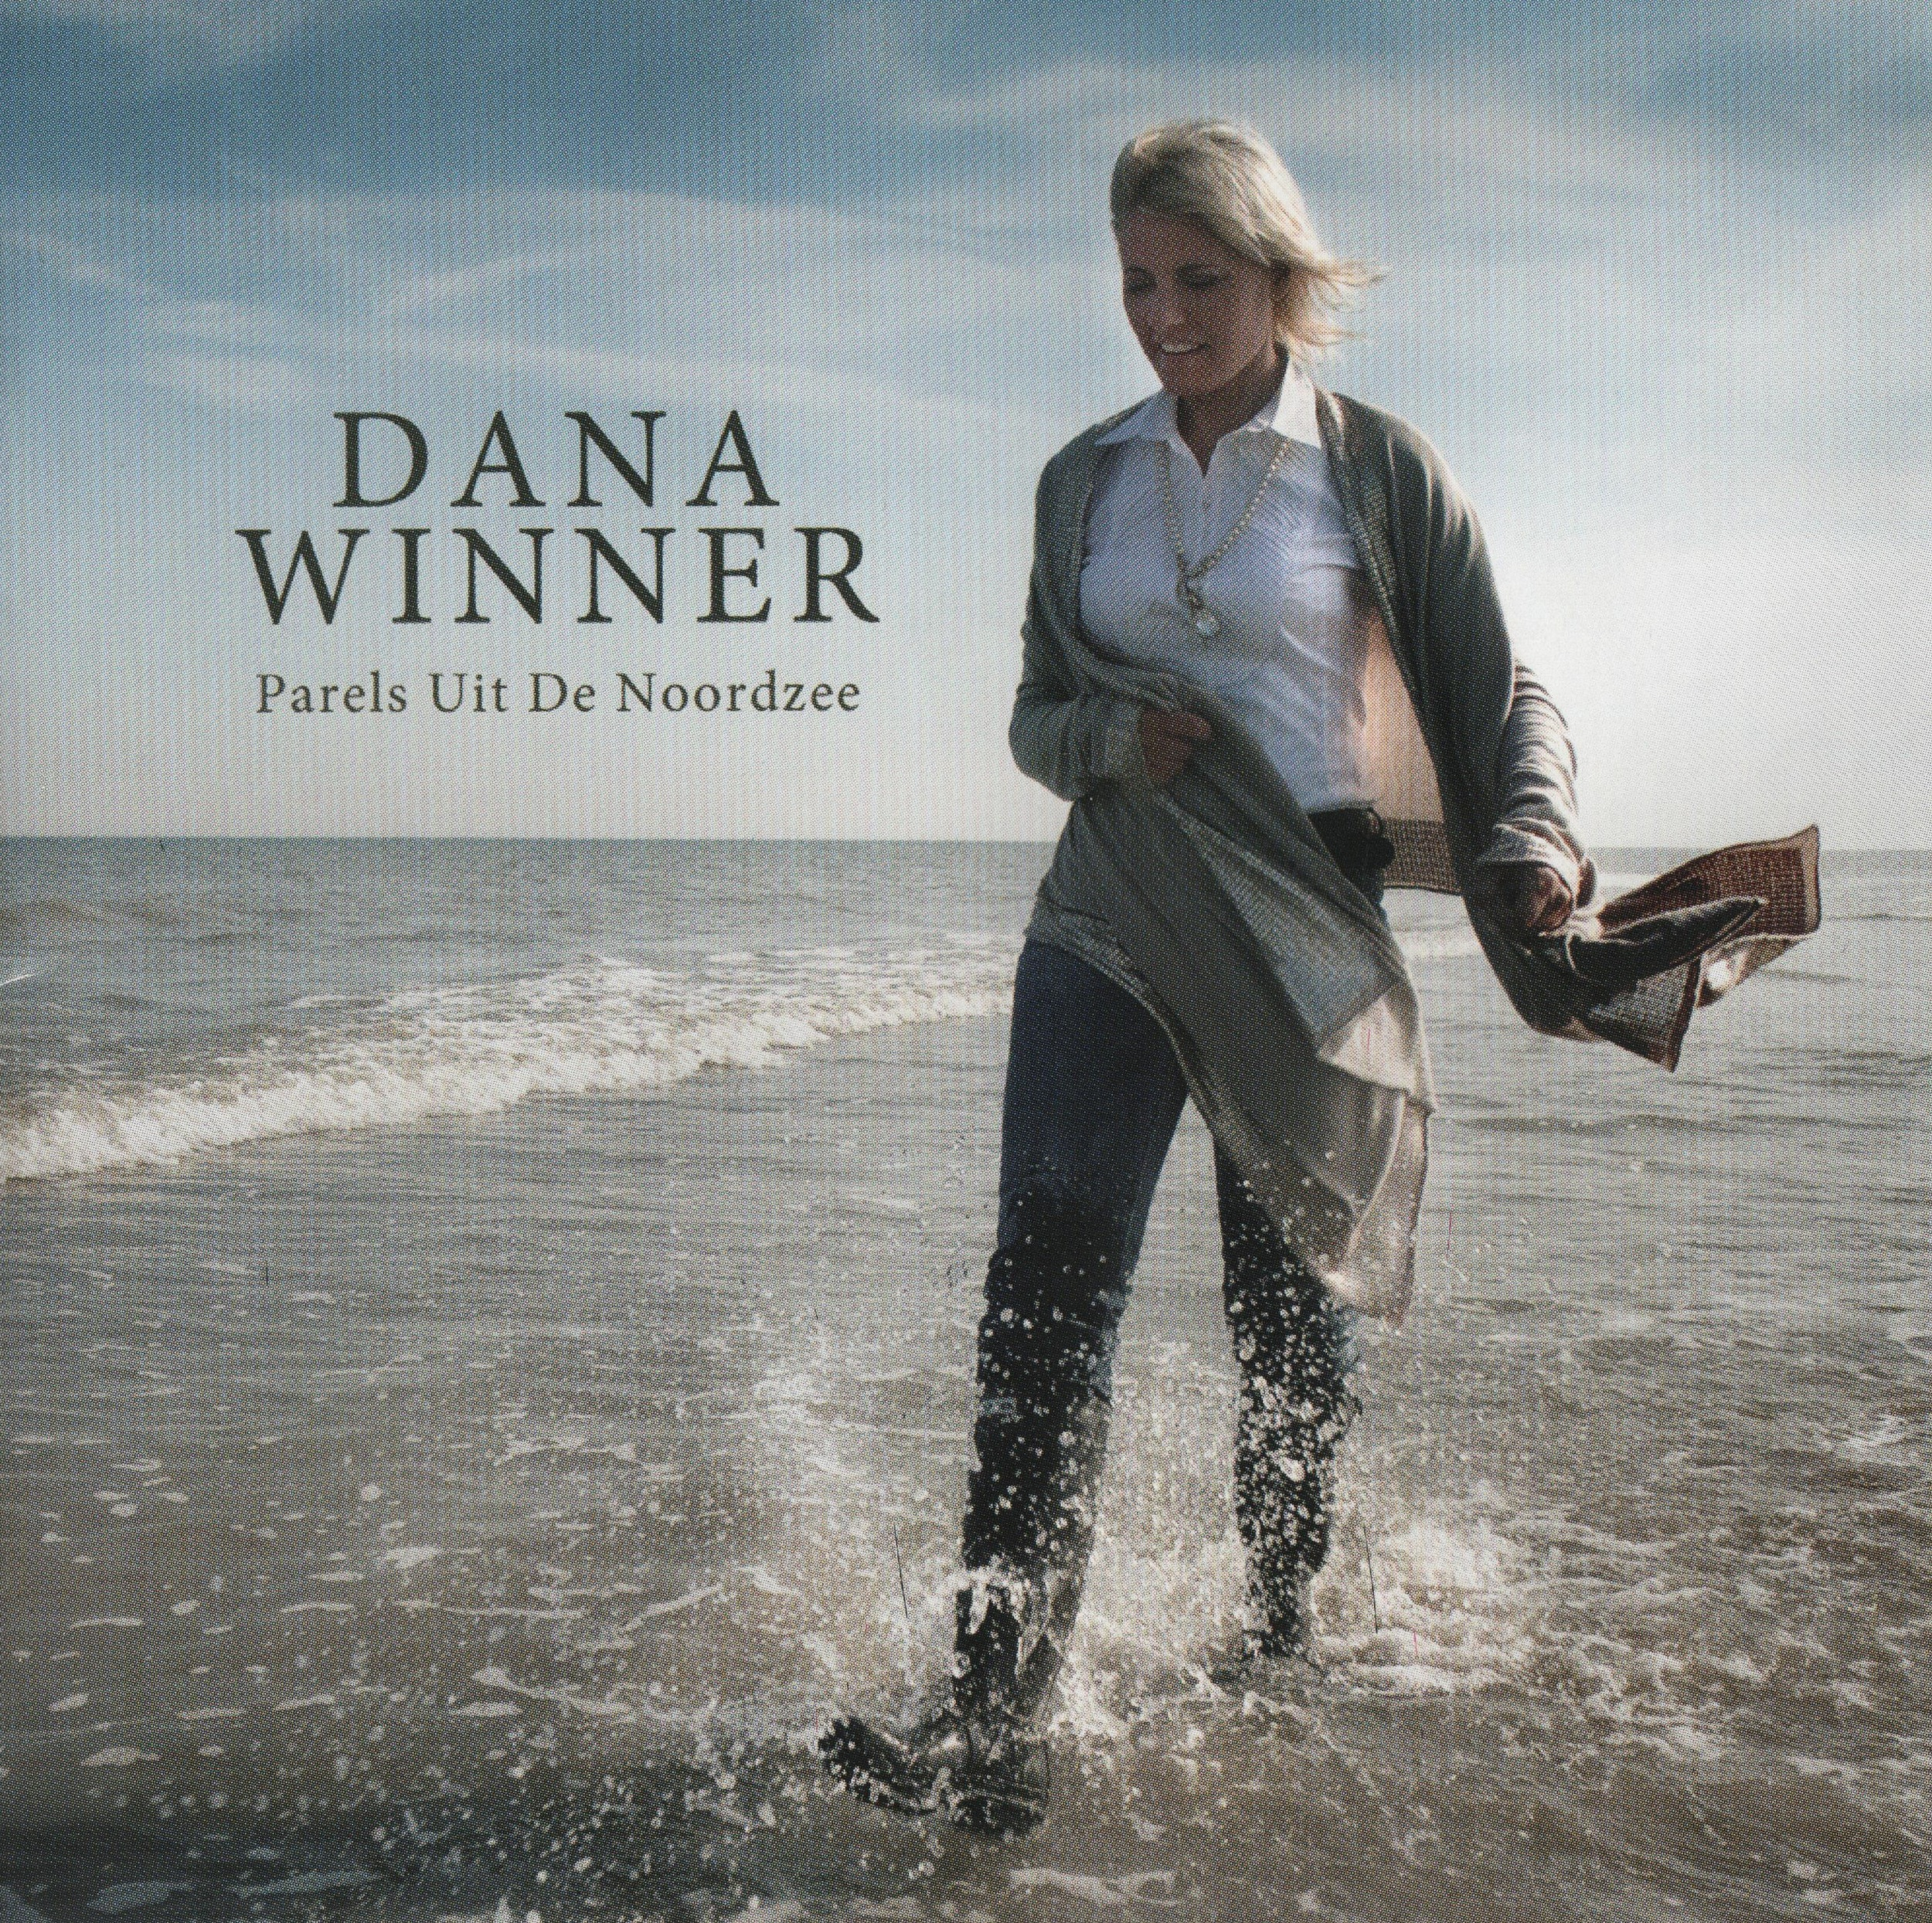 Famous Flemish singer Dana Winner's cover cd. I wrote the stringparts and additional parts.